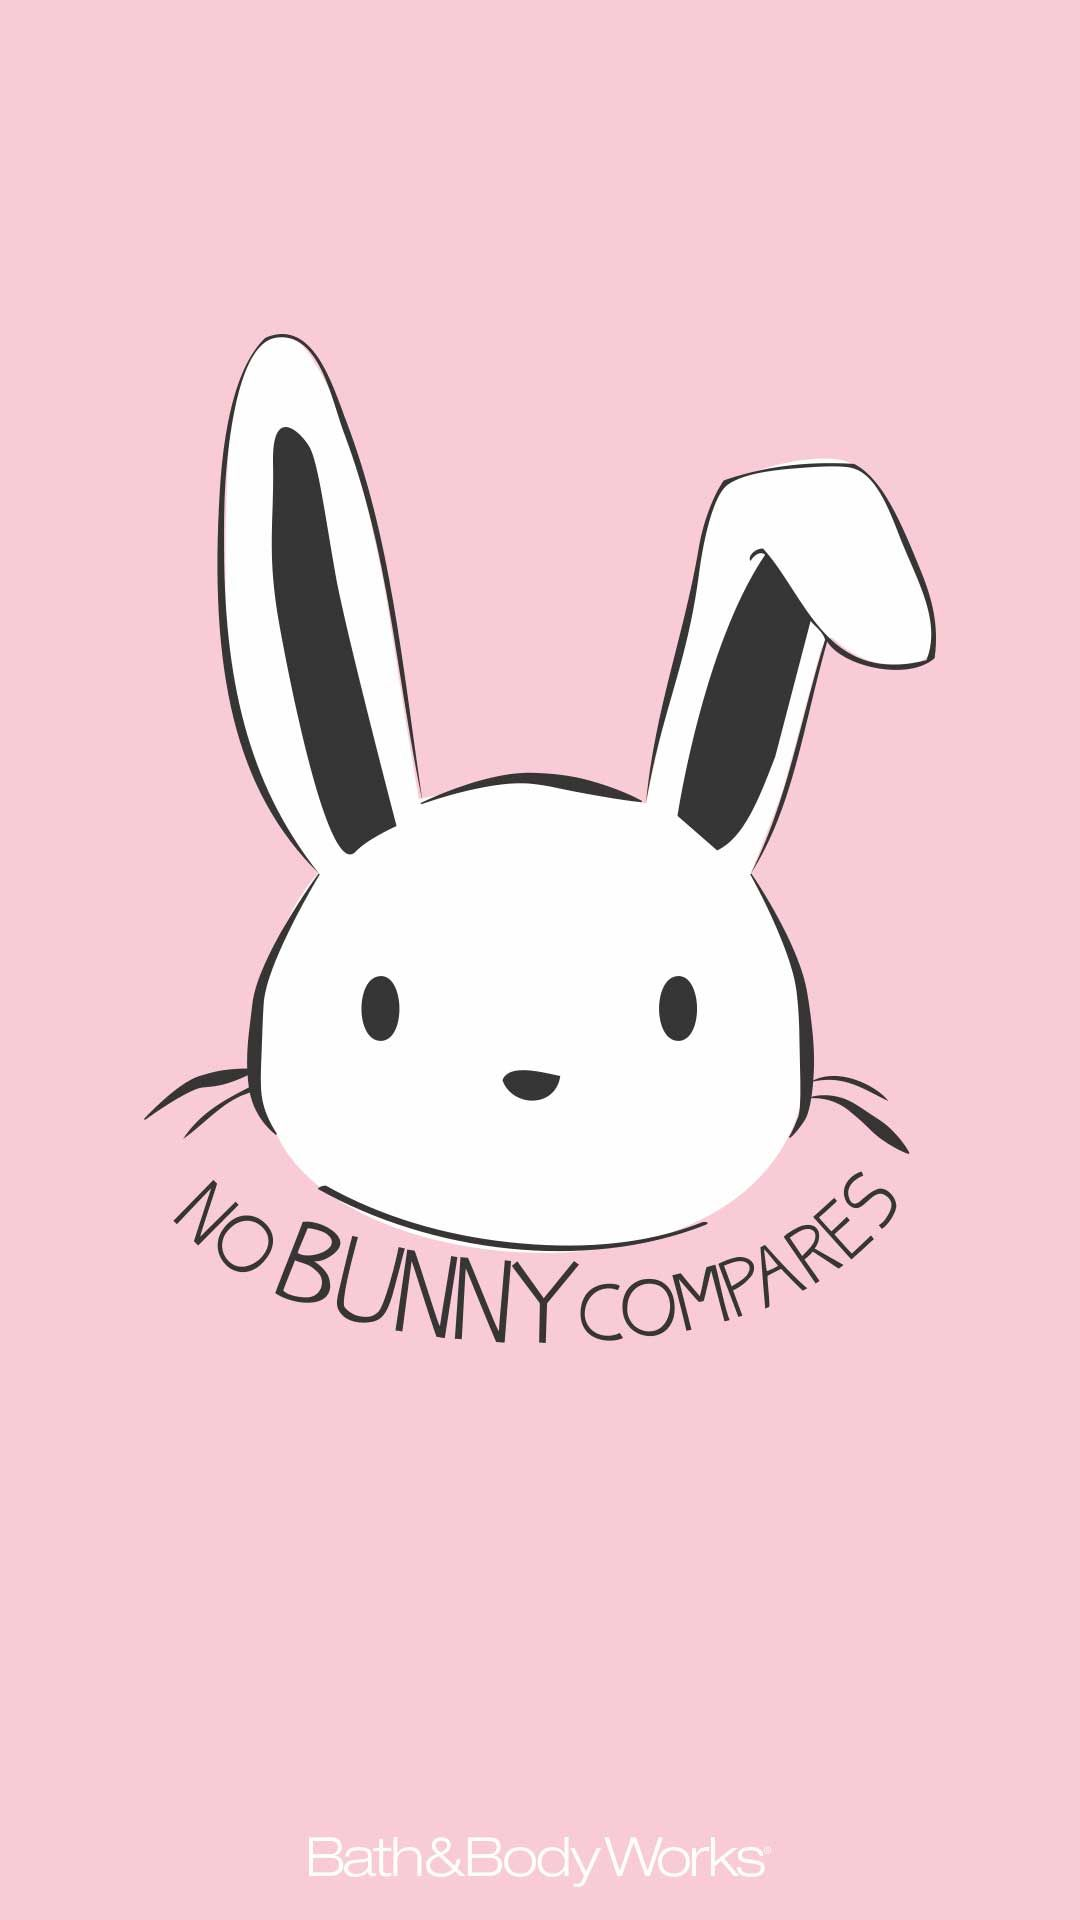 No Bunny Compares Easter Iphone Wallpaper Easter Wallpaper Bunny Wallpaper Rabbit Wallpaper